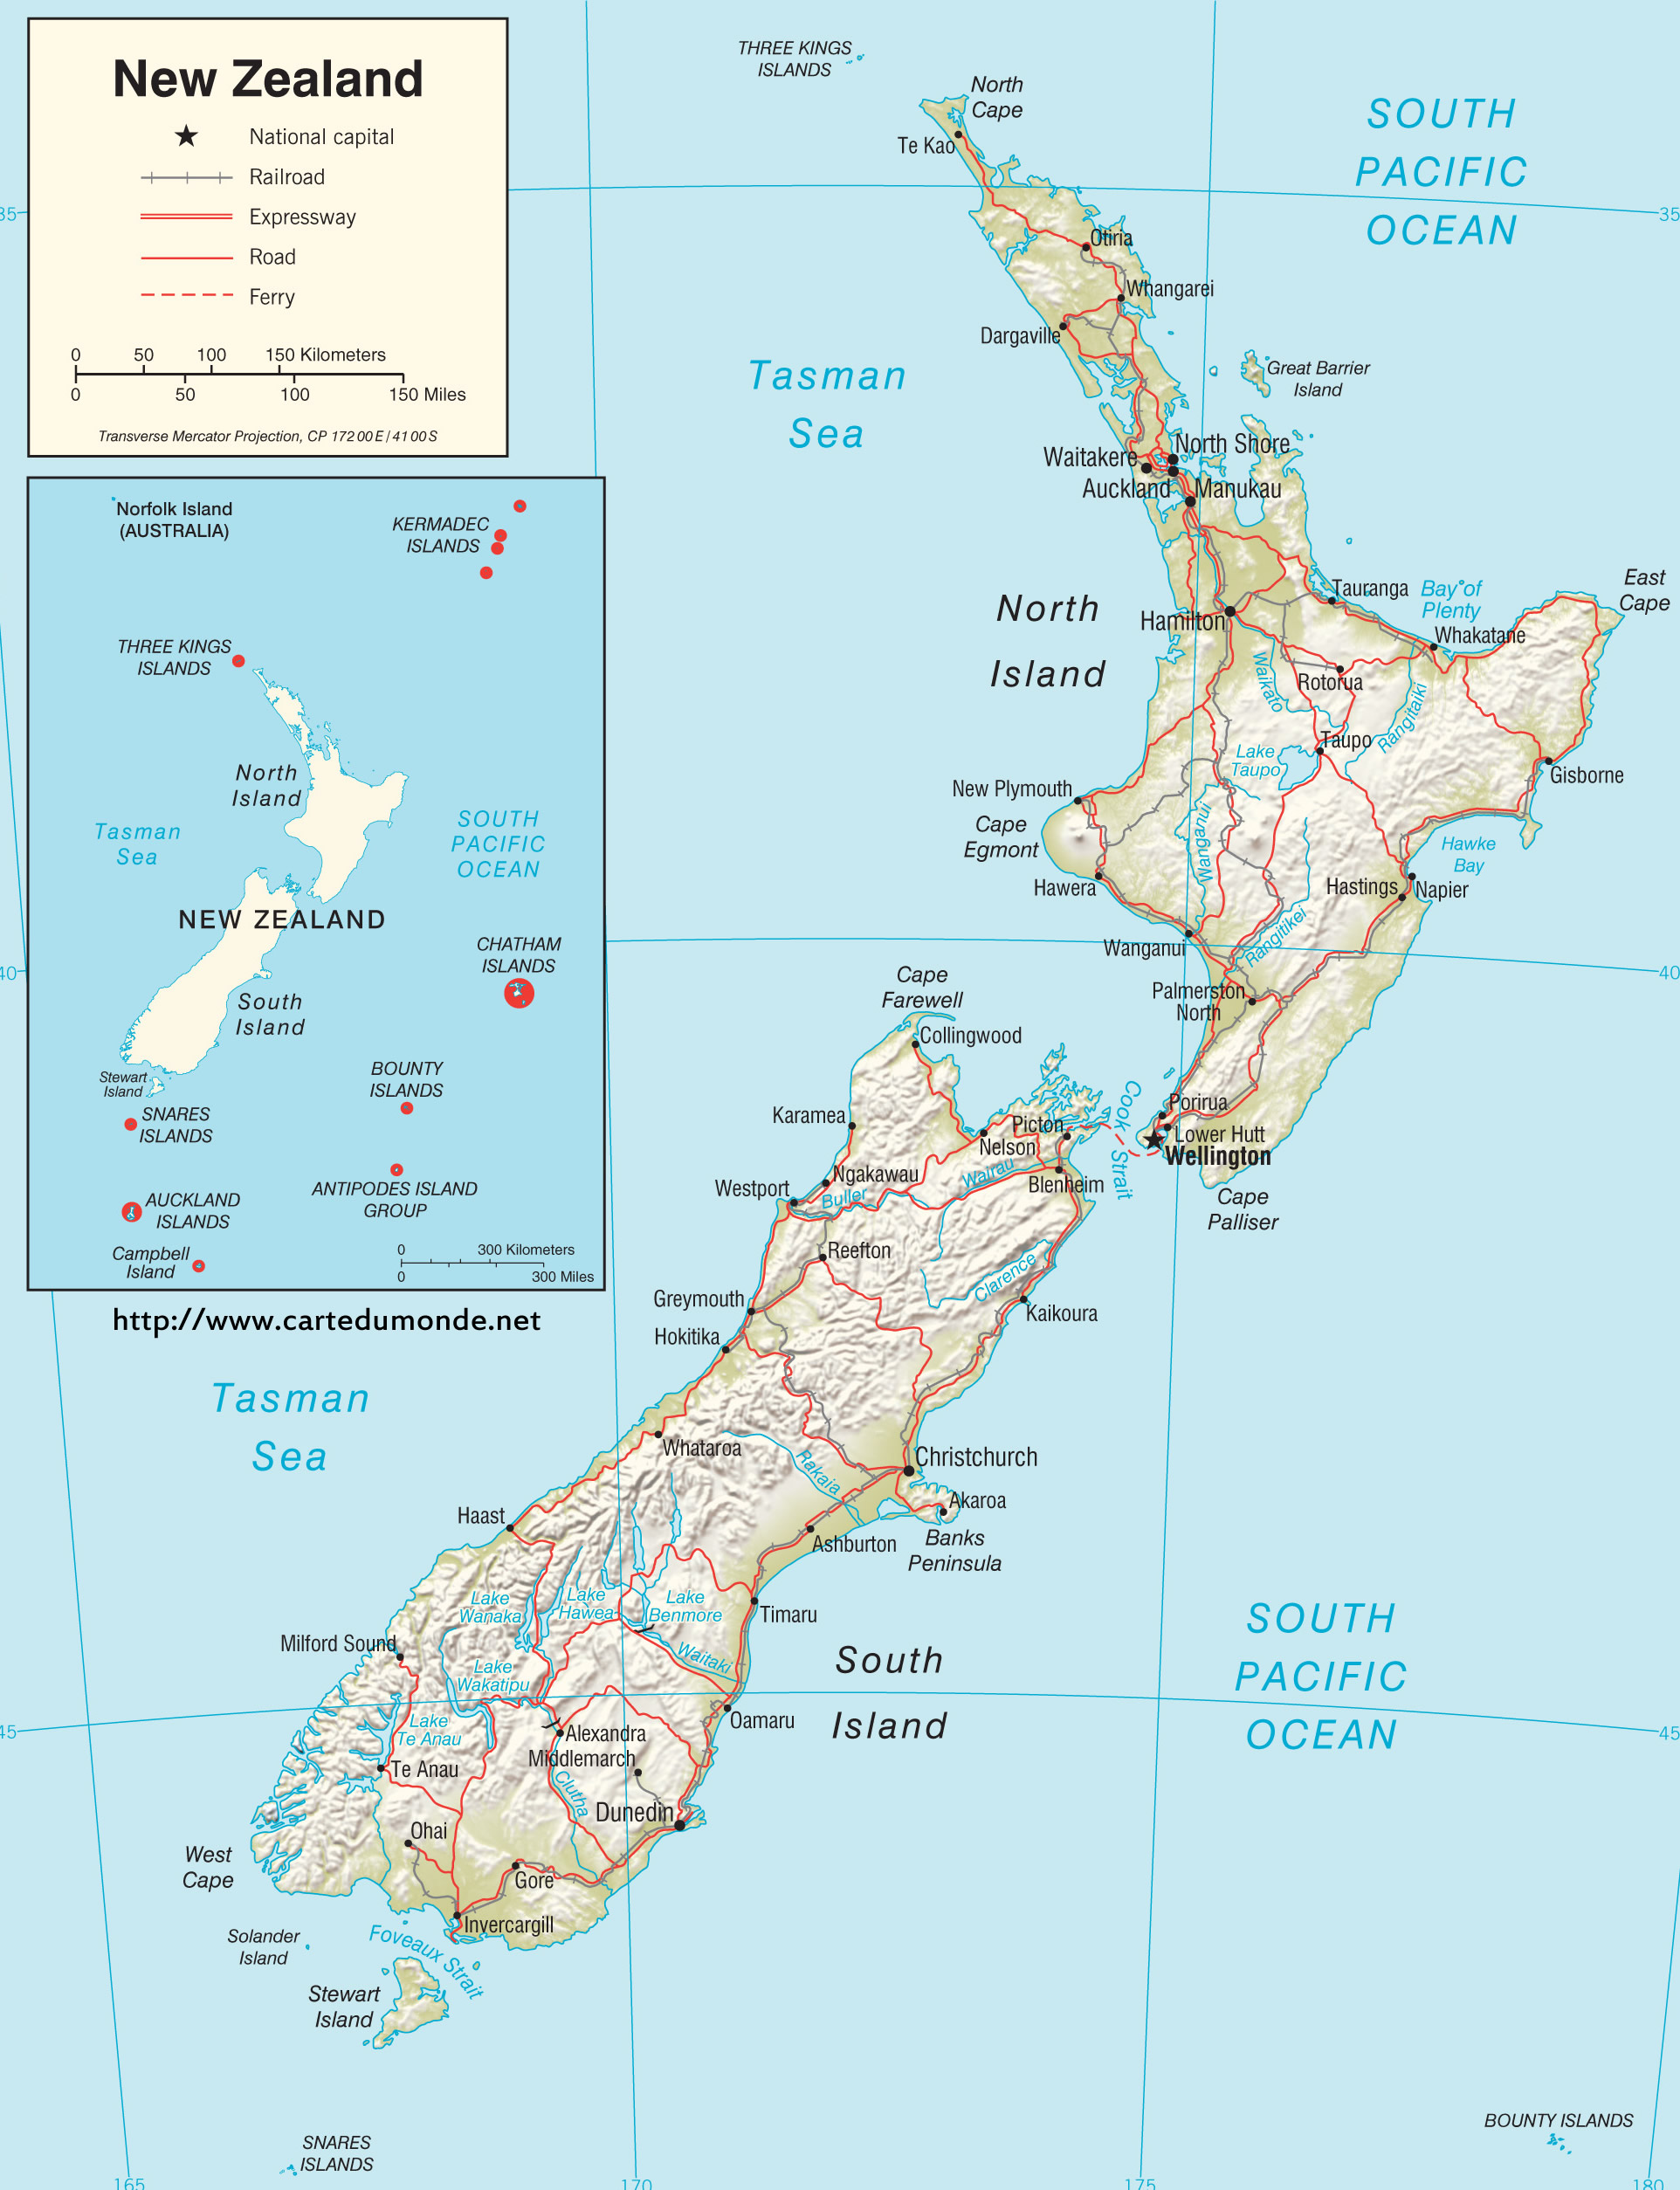 Norfolk dating agency-in-Chatham Islands